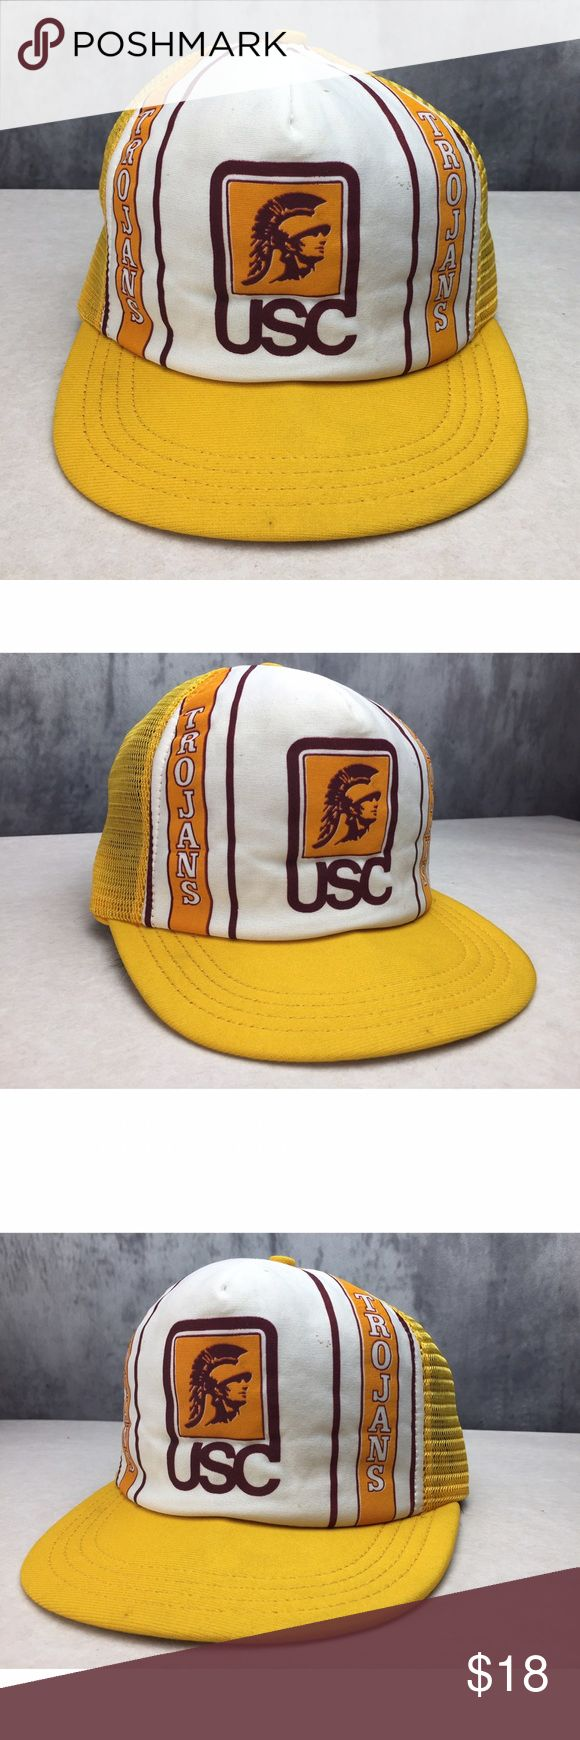 TRUE VINTAGE USC TROJANS DEAD STOCK ADJUSTABLE HAT TRUE VINTAGE USC TROJANS DEAD STOCK ADJUSTABLE HAT!! Amazing UNIVERSITY OF SOUTHERN CALIFORNIA true vintage find! Inside of hat looks like it has never even been worn! Top of hat does have some stains as seen in picture. MADE IN USA! Vintage Accessories Hats